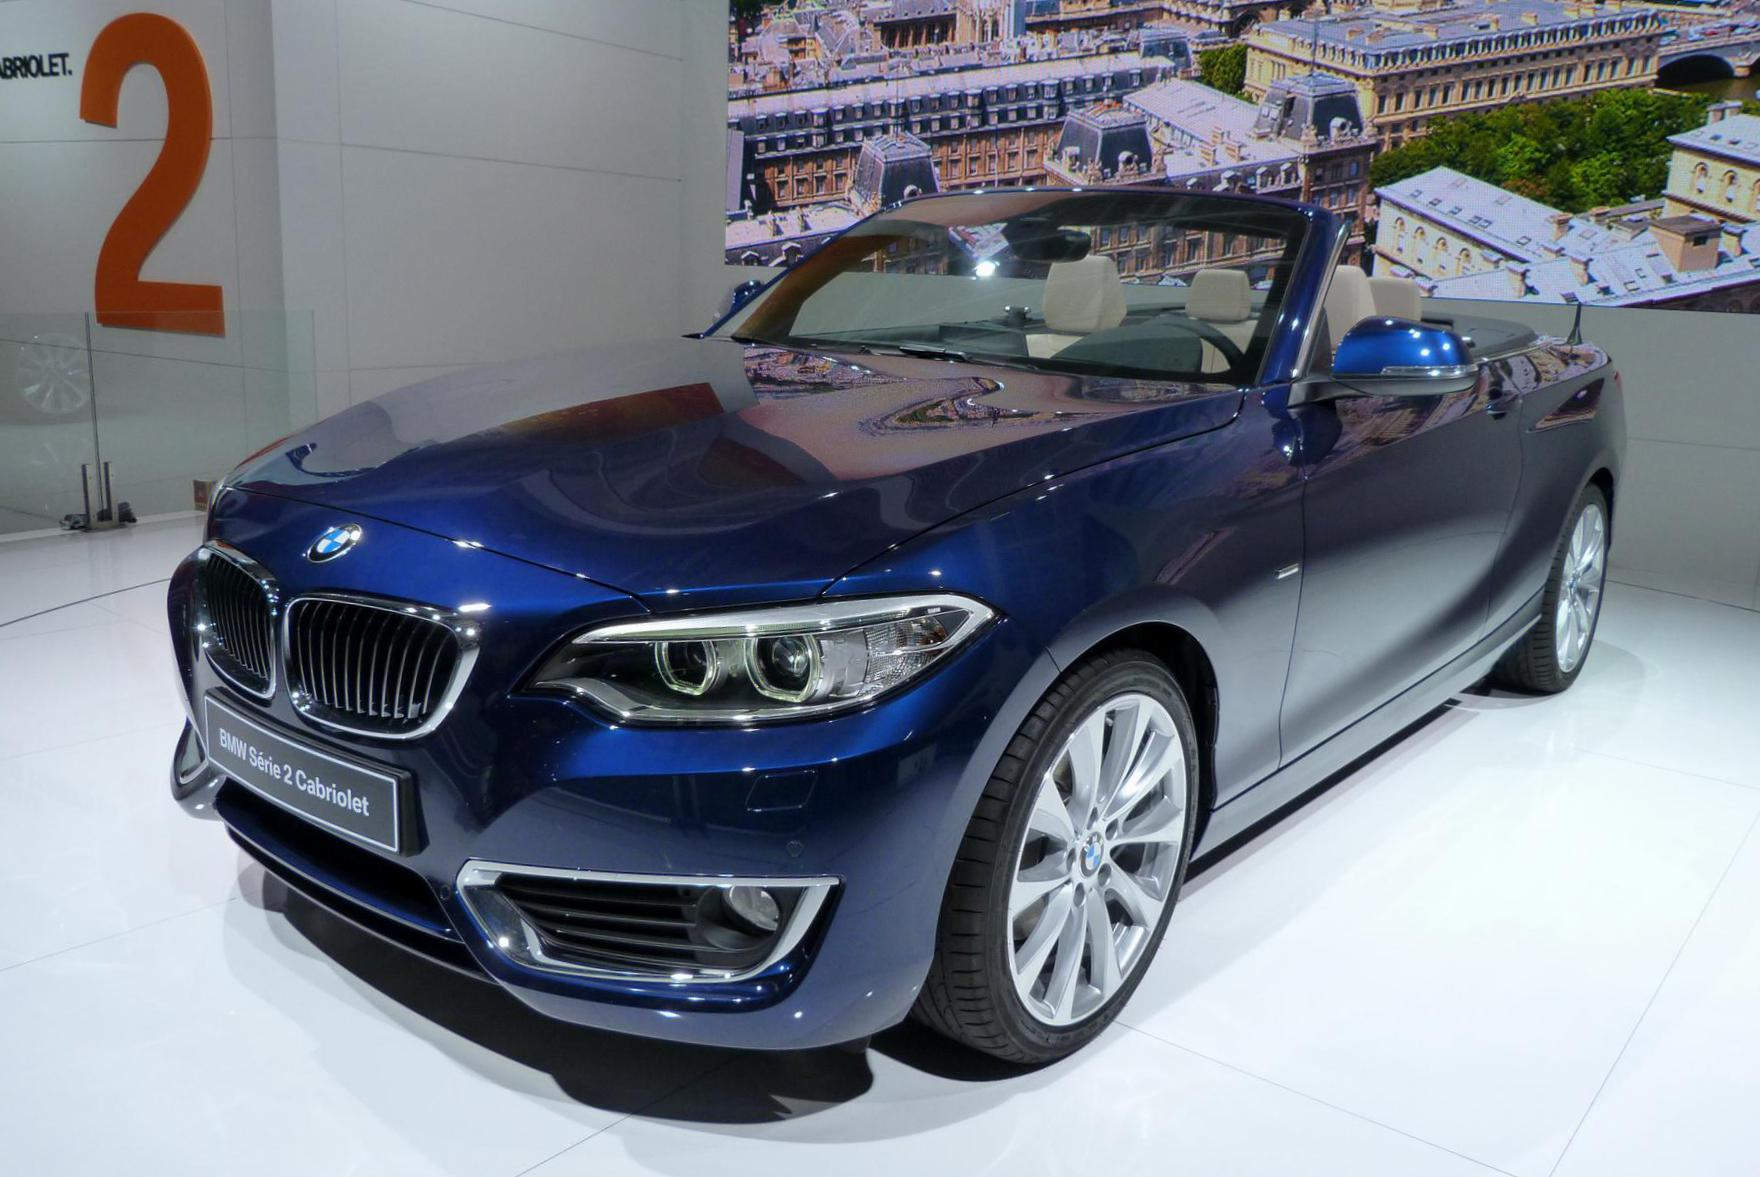 2 Series Convertible (F23) BMW configuration 2010